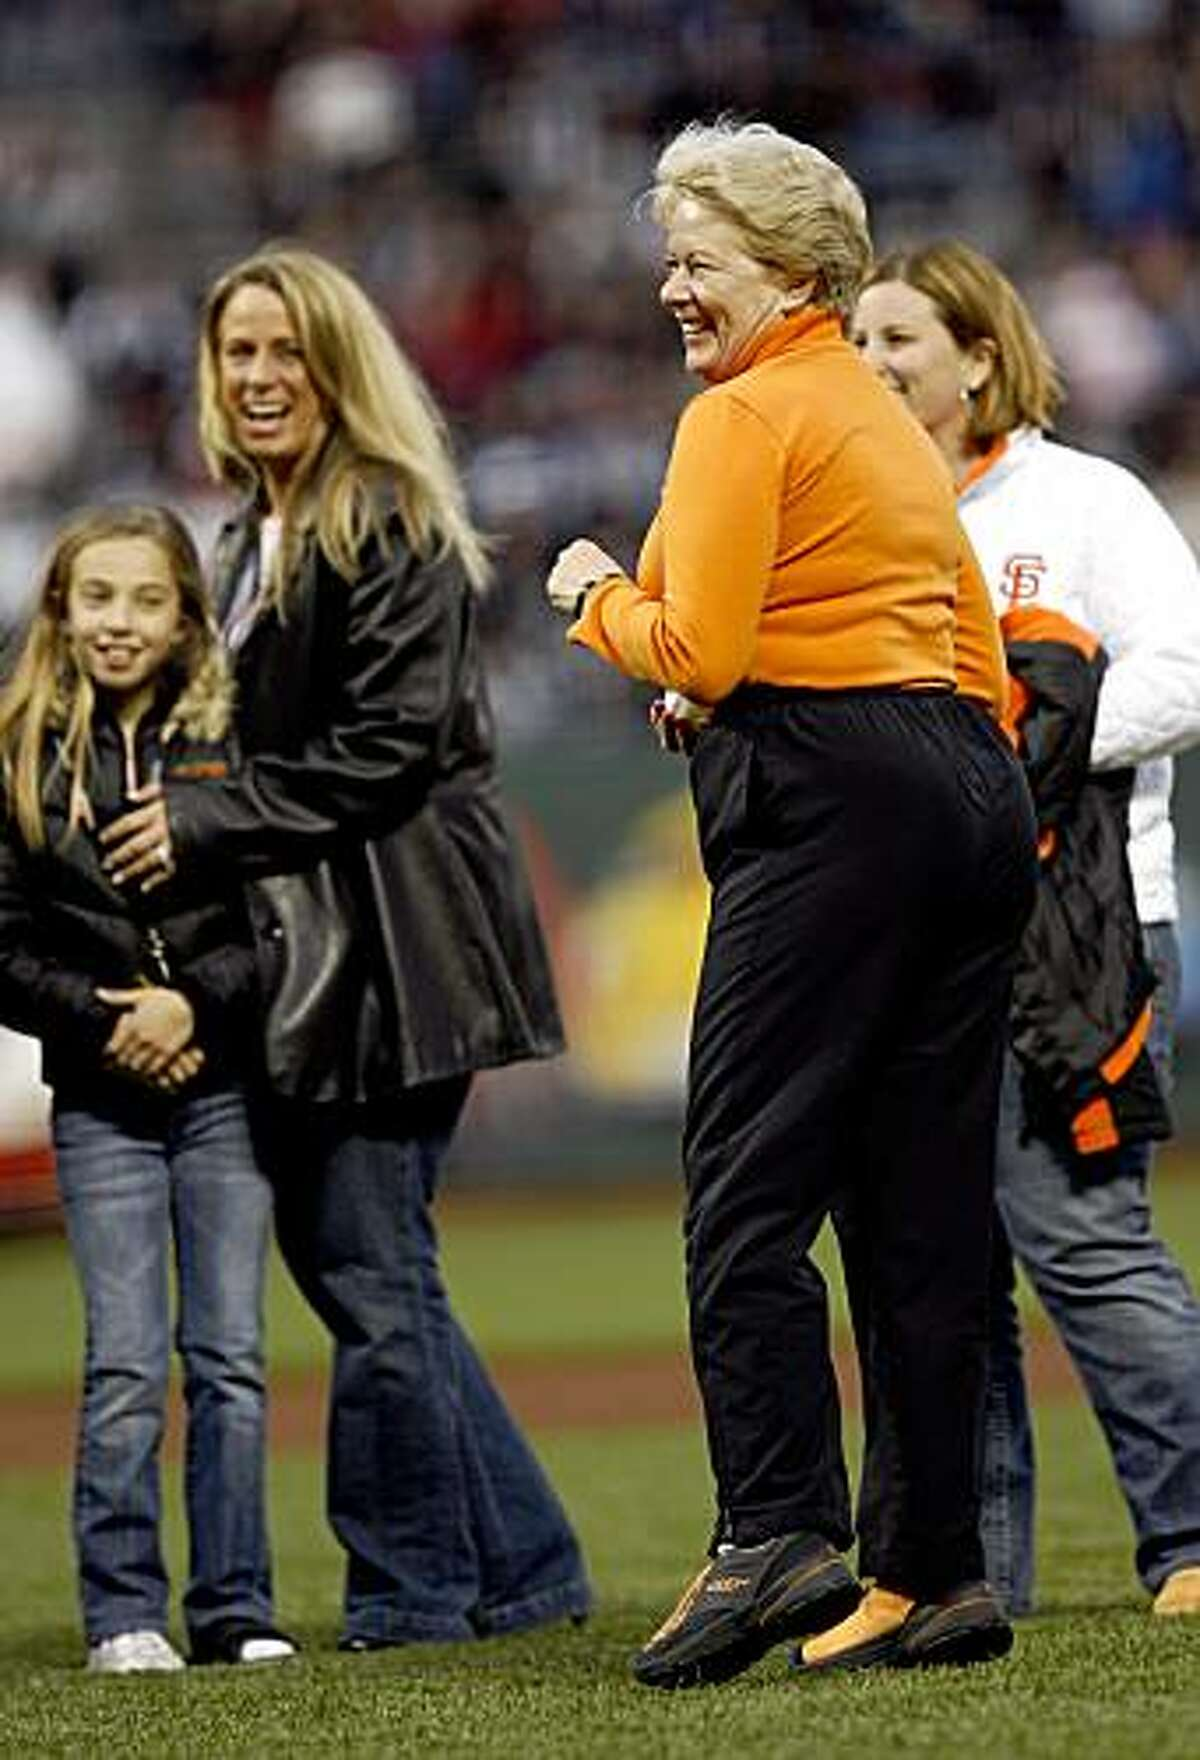 In this April 4, 2007, photo, San Francisco Giants' owner Sue Burns prepares to throw the first pitch in honor of her late husband, Harmon Burns, who had died the previous year, at a baseball game in San Francisco, Calif. Sue Burns, a part owner of the Giants, died late Saturday, July 18, 2009. Burns, 58, died of complications from cancer, team spokesman Jim Moorehead said Sunday.